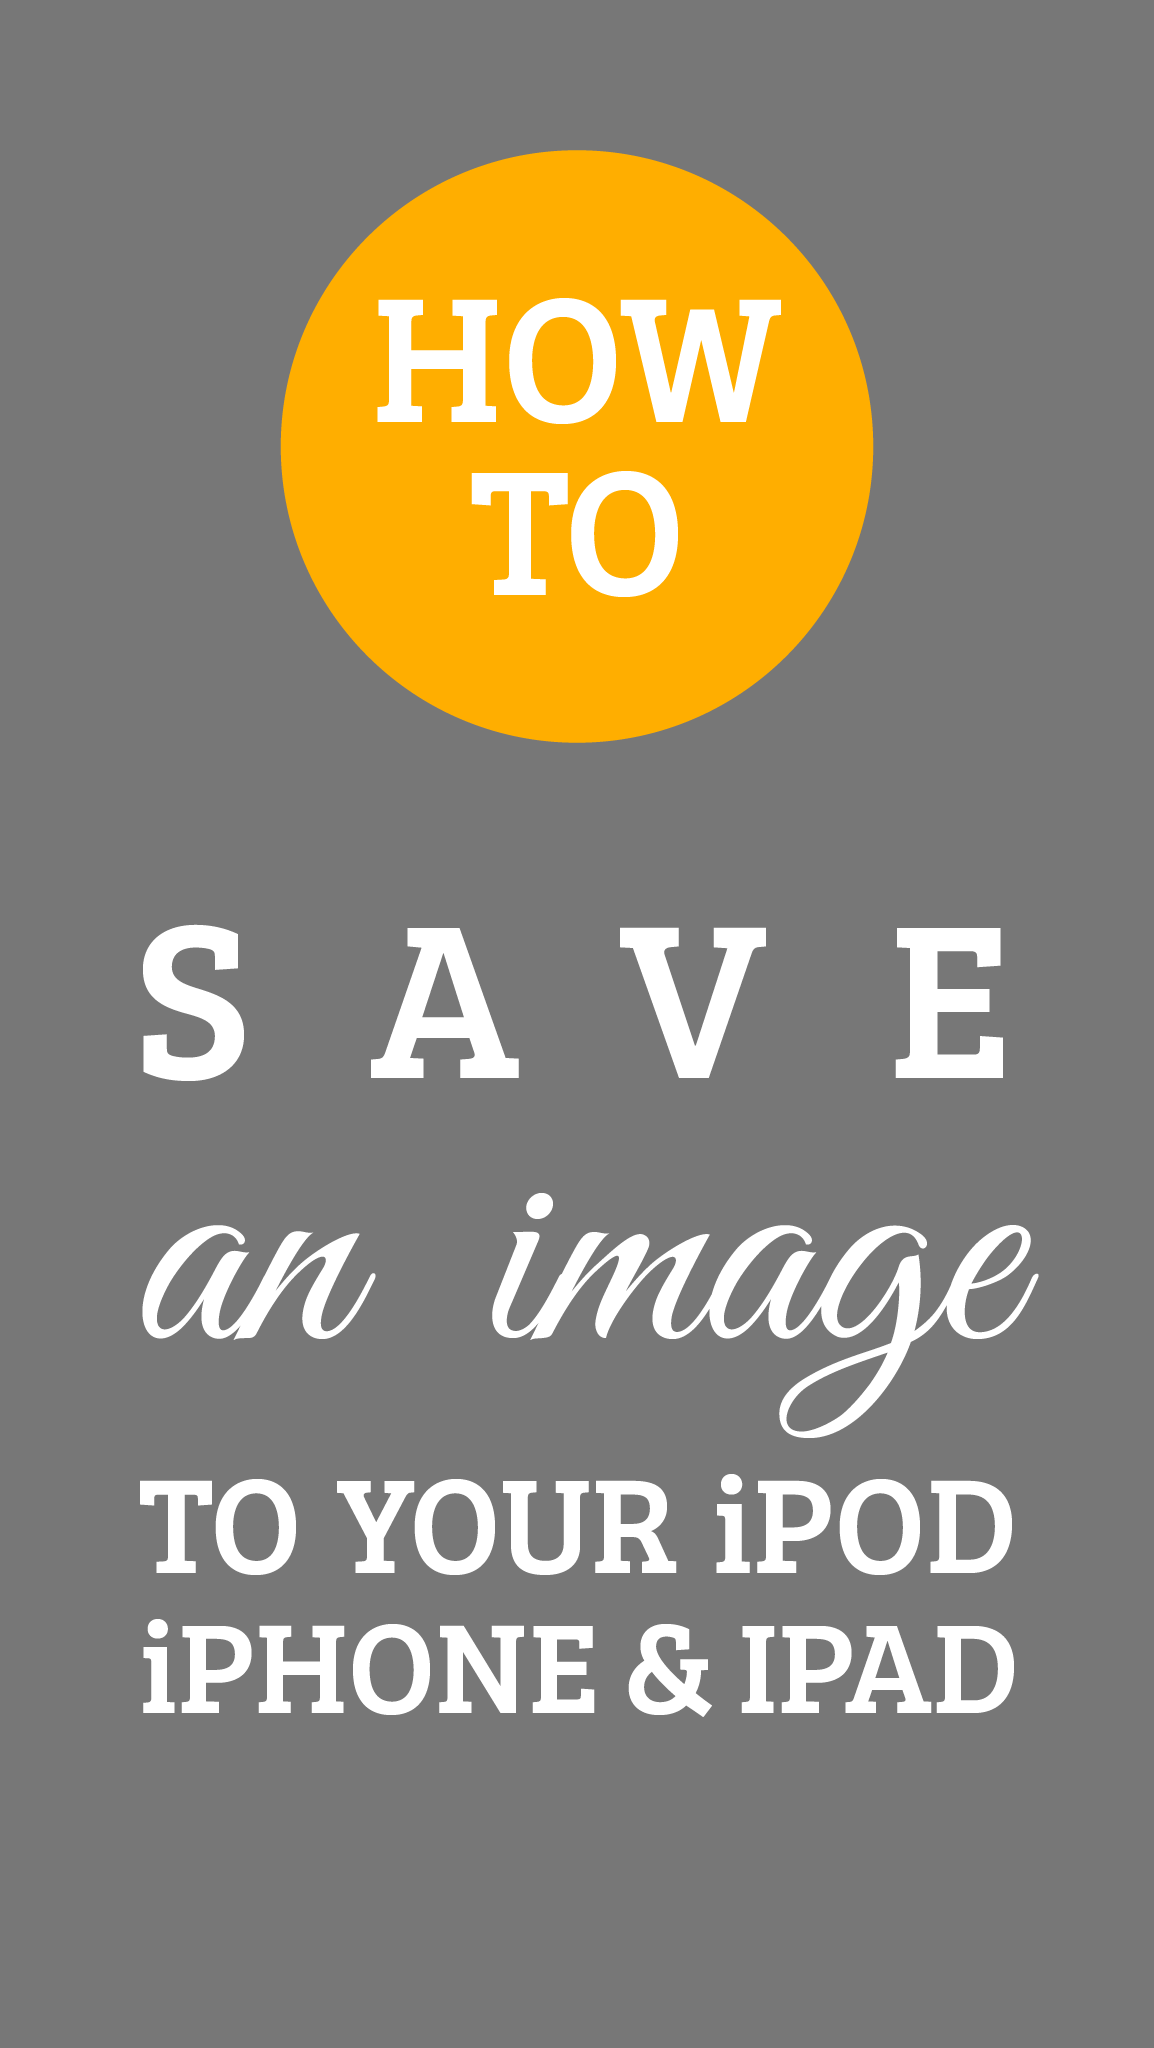 How to Save an Image to your iPhone, iPod or iPad